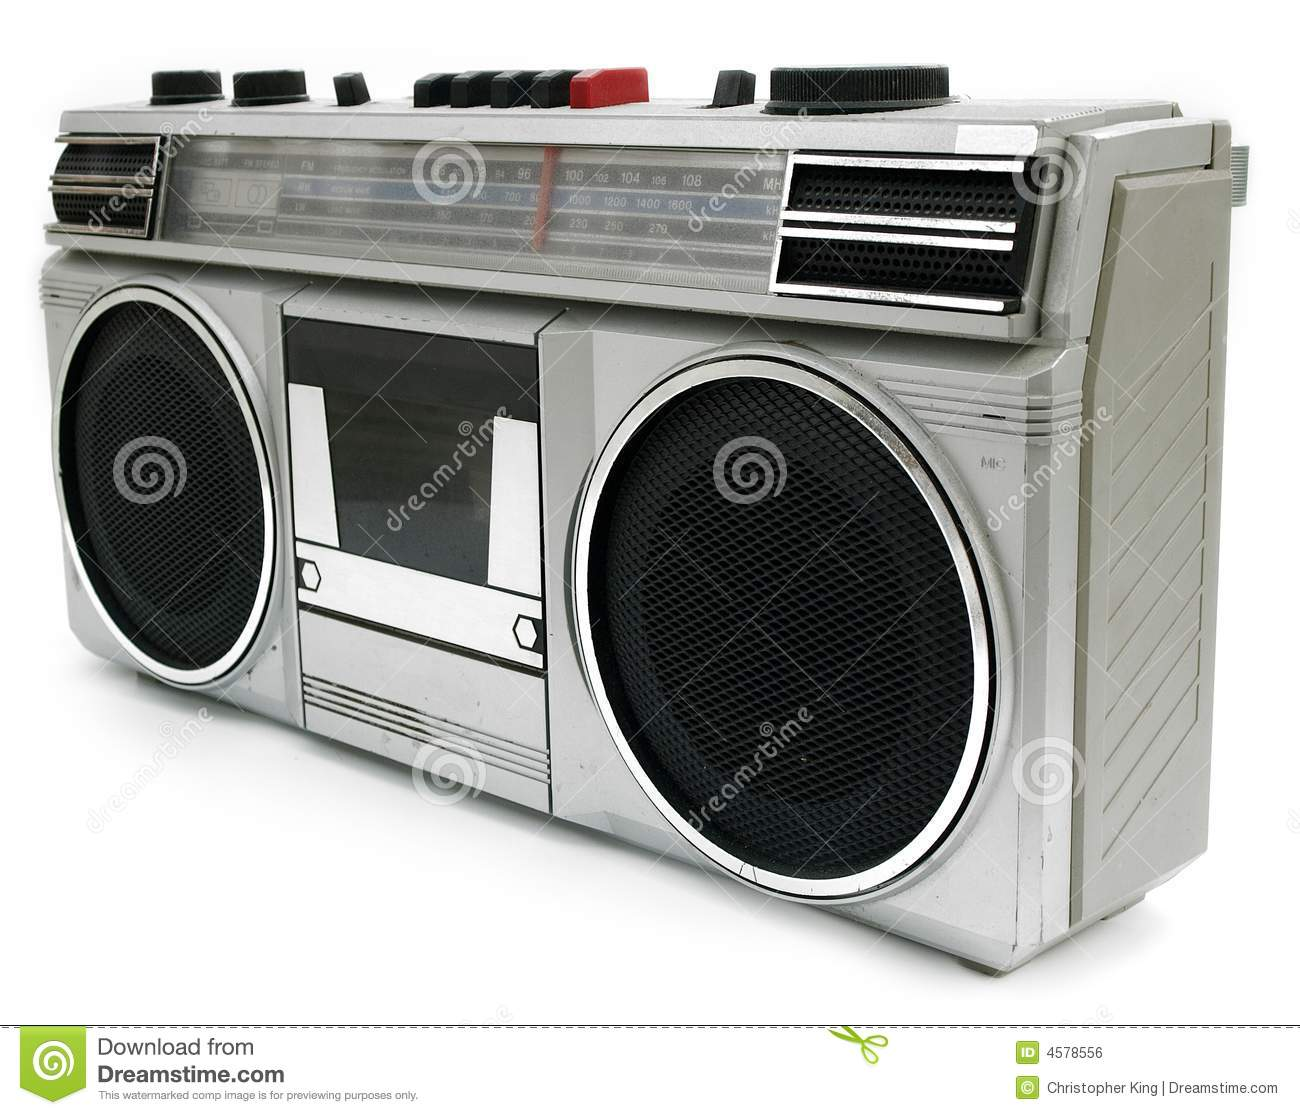 1980s boombox from 1980s stock photography - image: 12207712